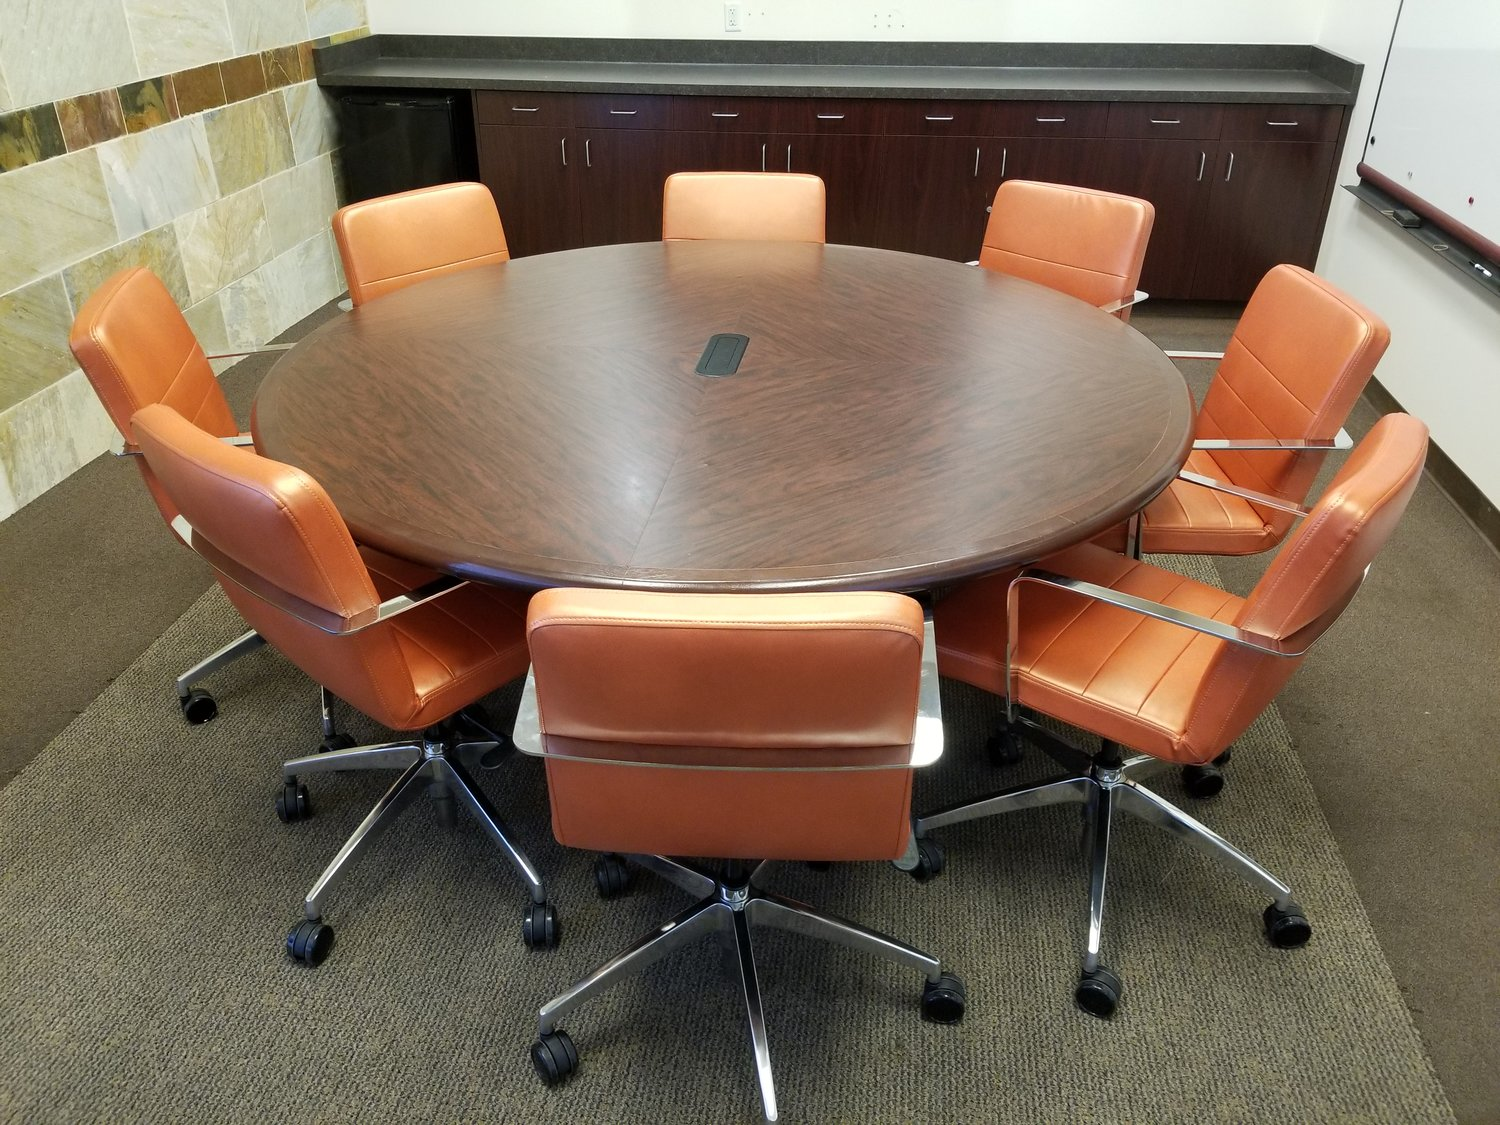 Contract Office Reps - 60 round conference table